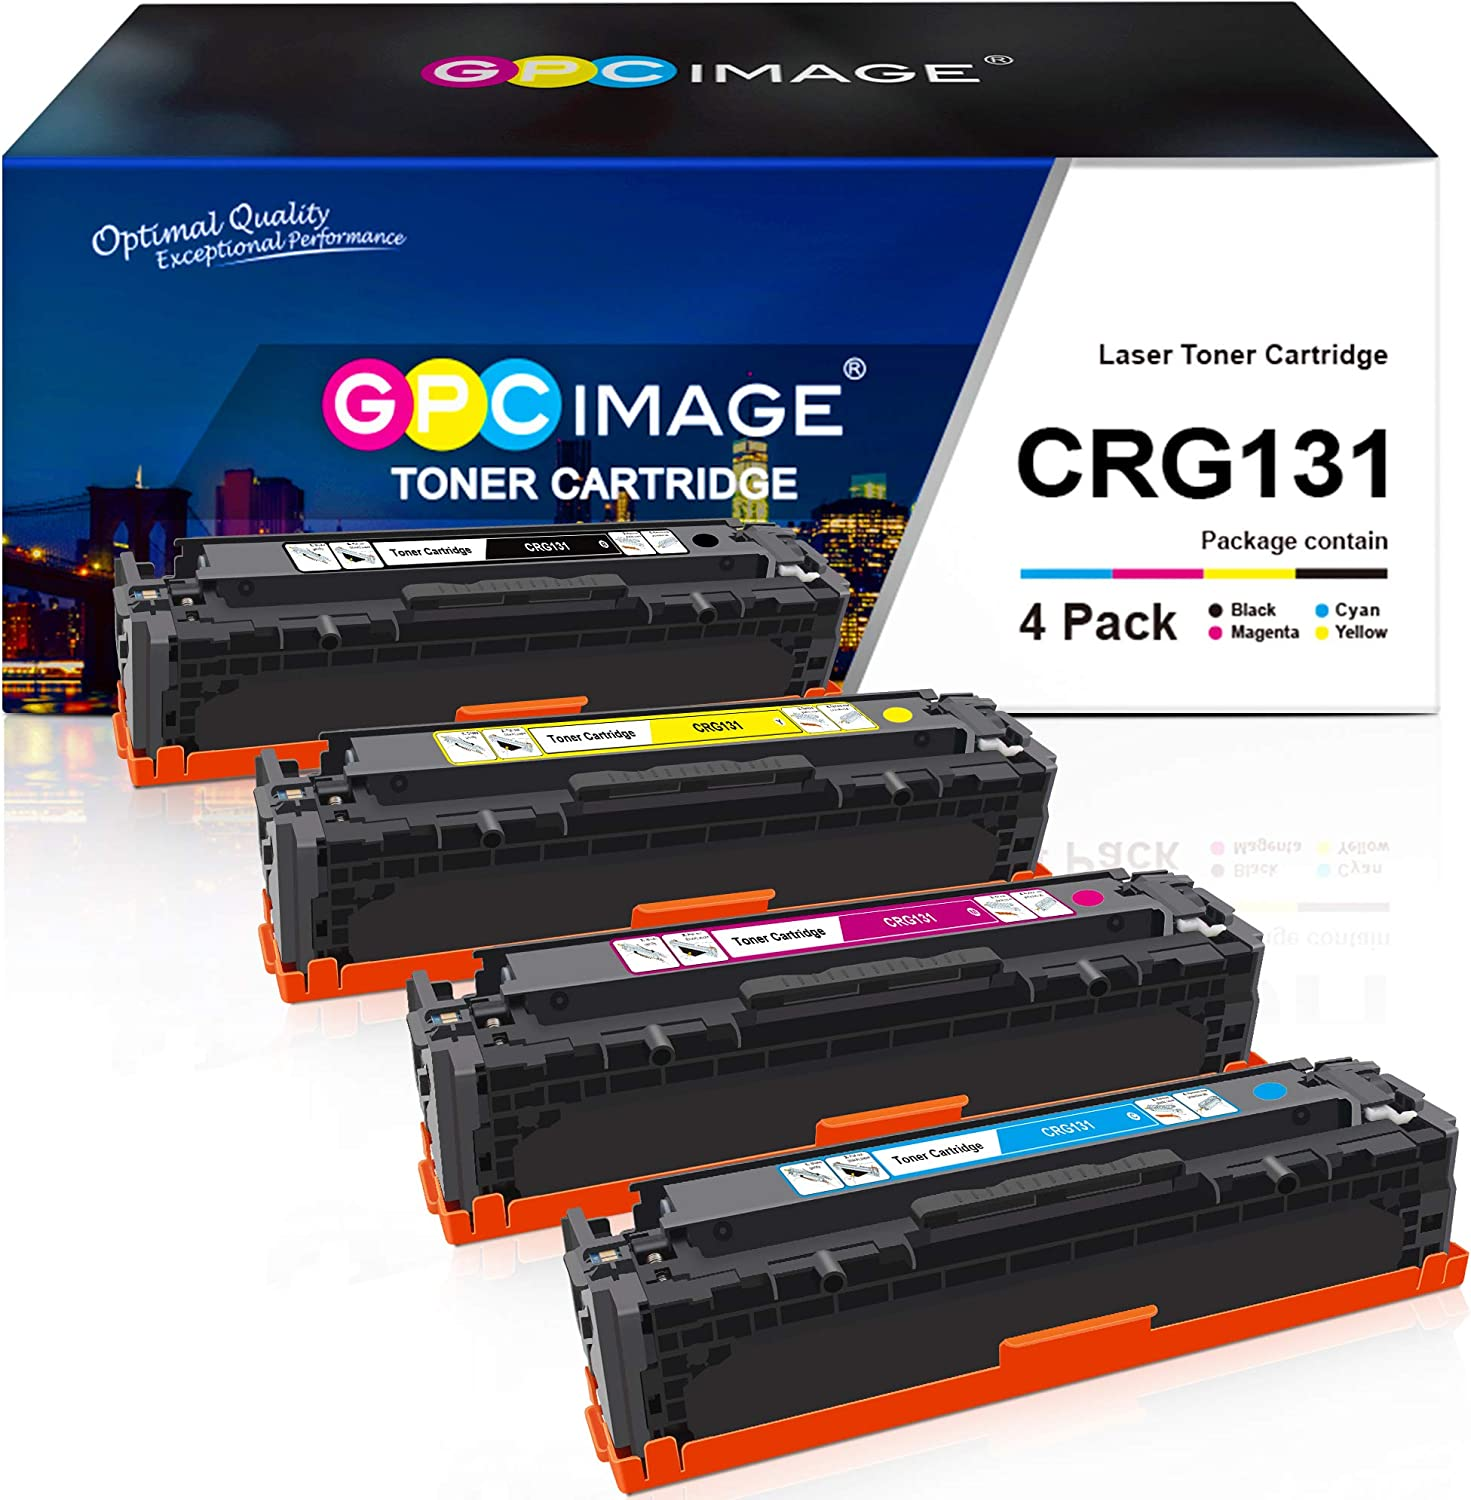 GPC Image Remanufactured Toner Cartridge Replacement for Canon 131 131H Toner to use with ImageClass MF8280Cw LBP7110Cw MF628Cw MF624Cw MF8230Cn Printer Tray (Black, Cyan, Magenta, Yellow, 4 Pack)